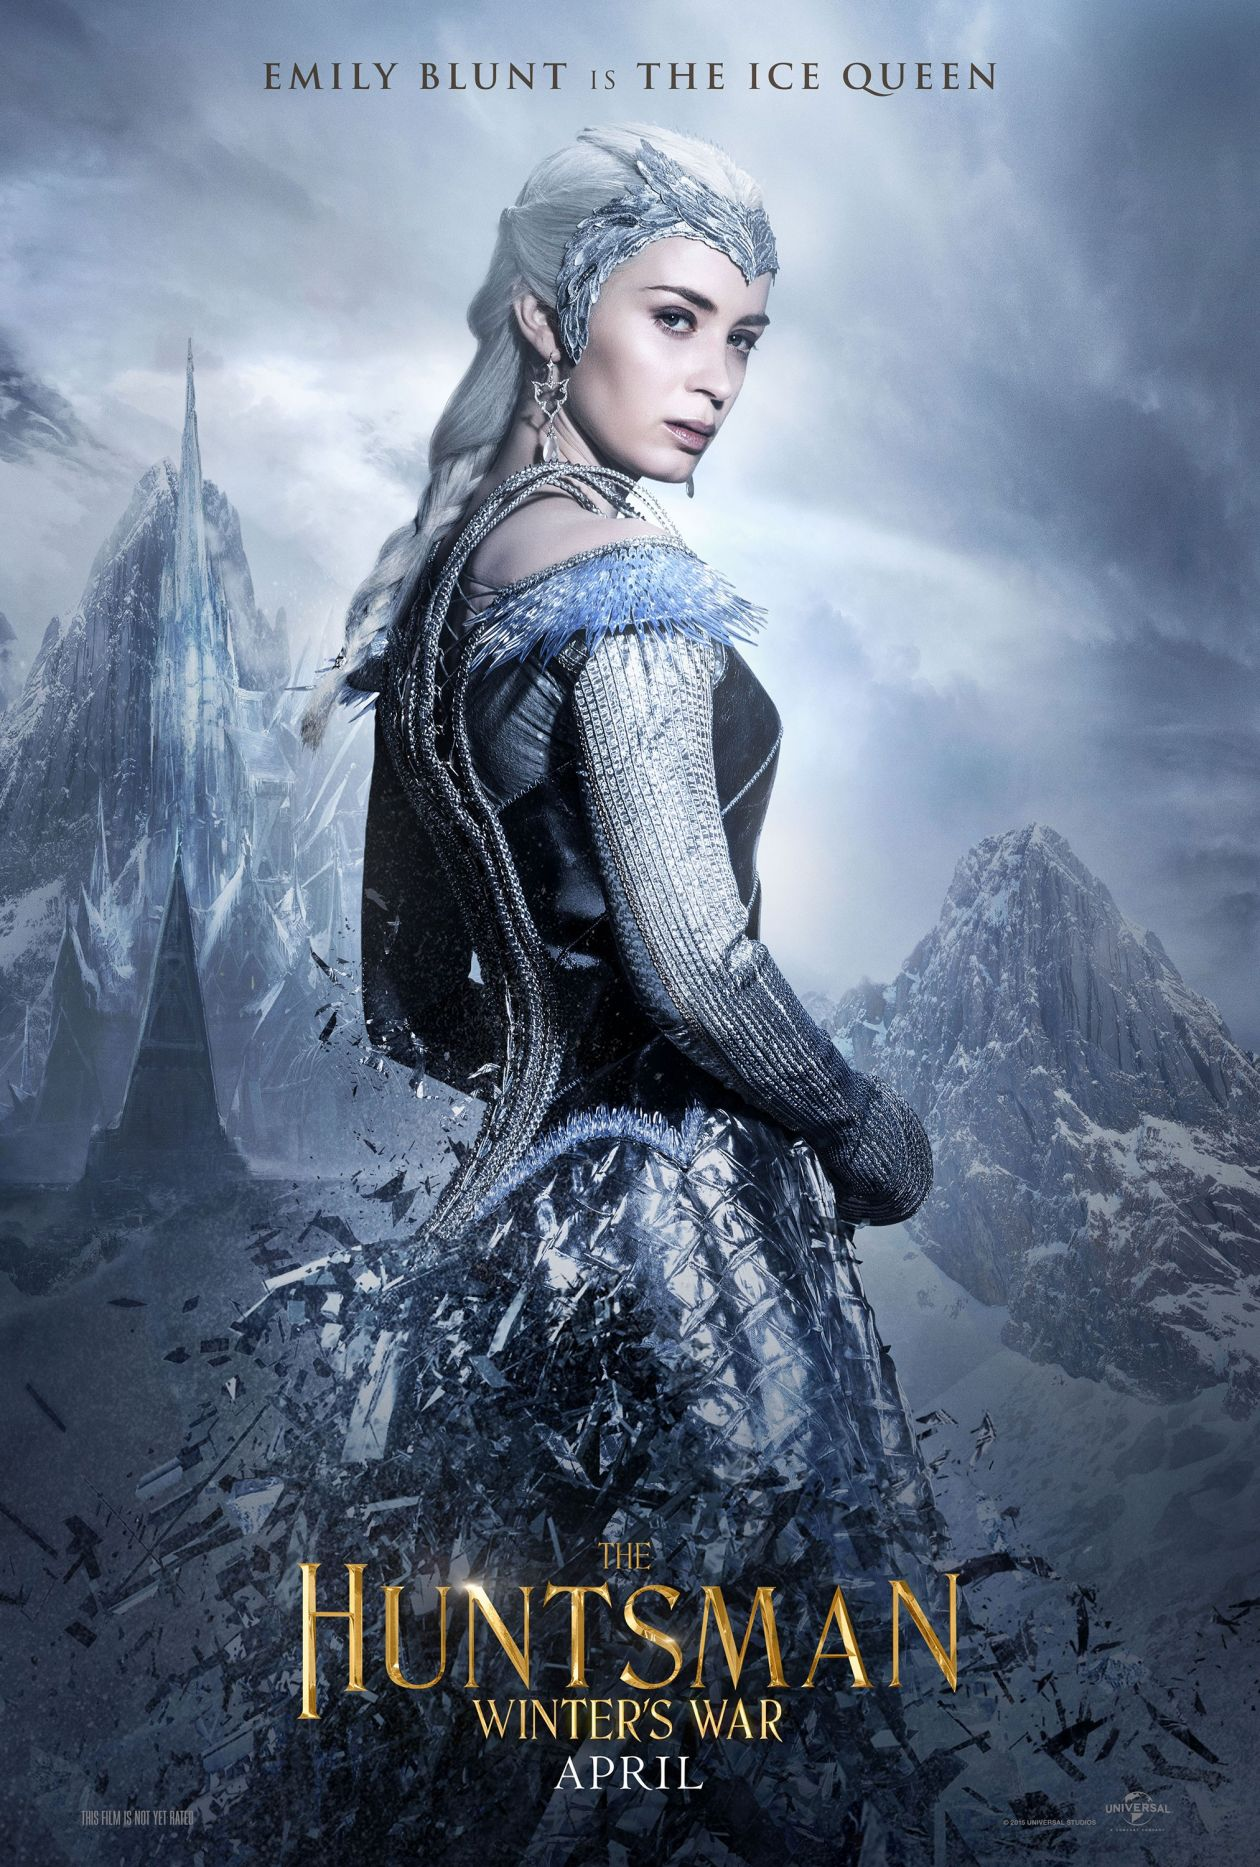 Emily Blunt actress | The Ice Queen | The Huntsman: Winter's War / Cedric Nicolas-Troyan 2016 Movie Poster Affiche film